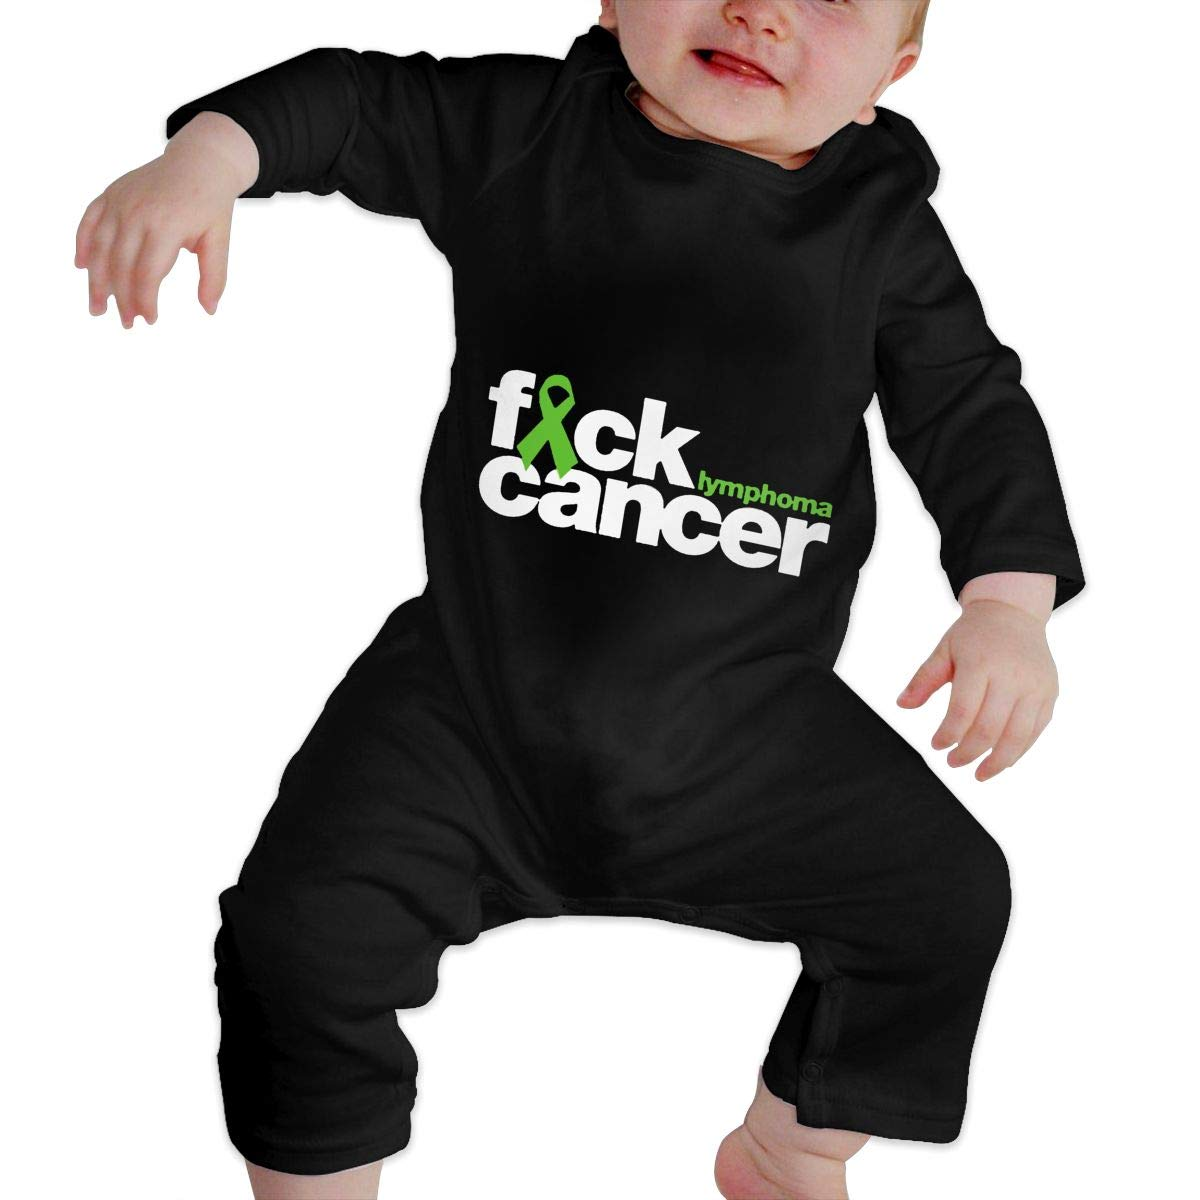 Fuck Lymphoma Cancer Unisex Long Sleeve Baby Gown Baby Bodysuit Unionsuit Footed Pajamas Romper Jumpsuit